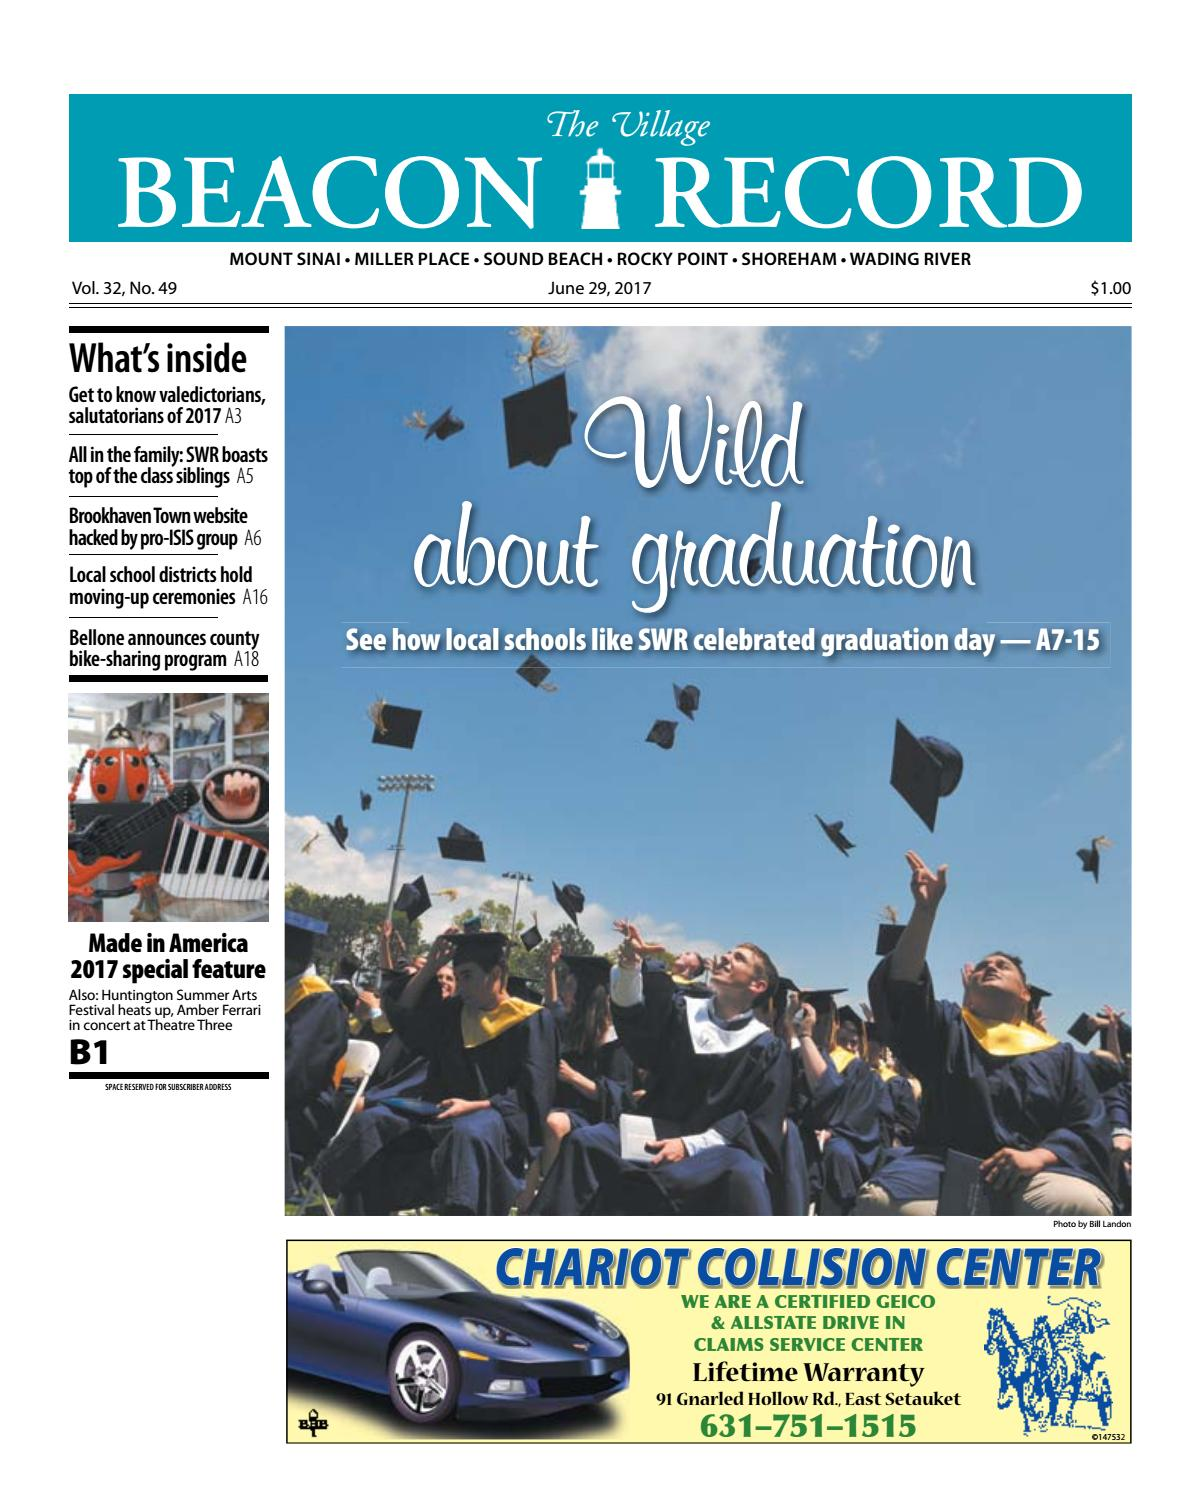 The Village Beacon Record - June 29, 2017 by TBR News Media - issuu